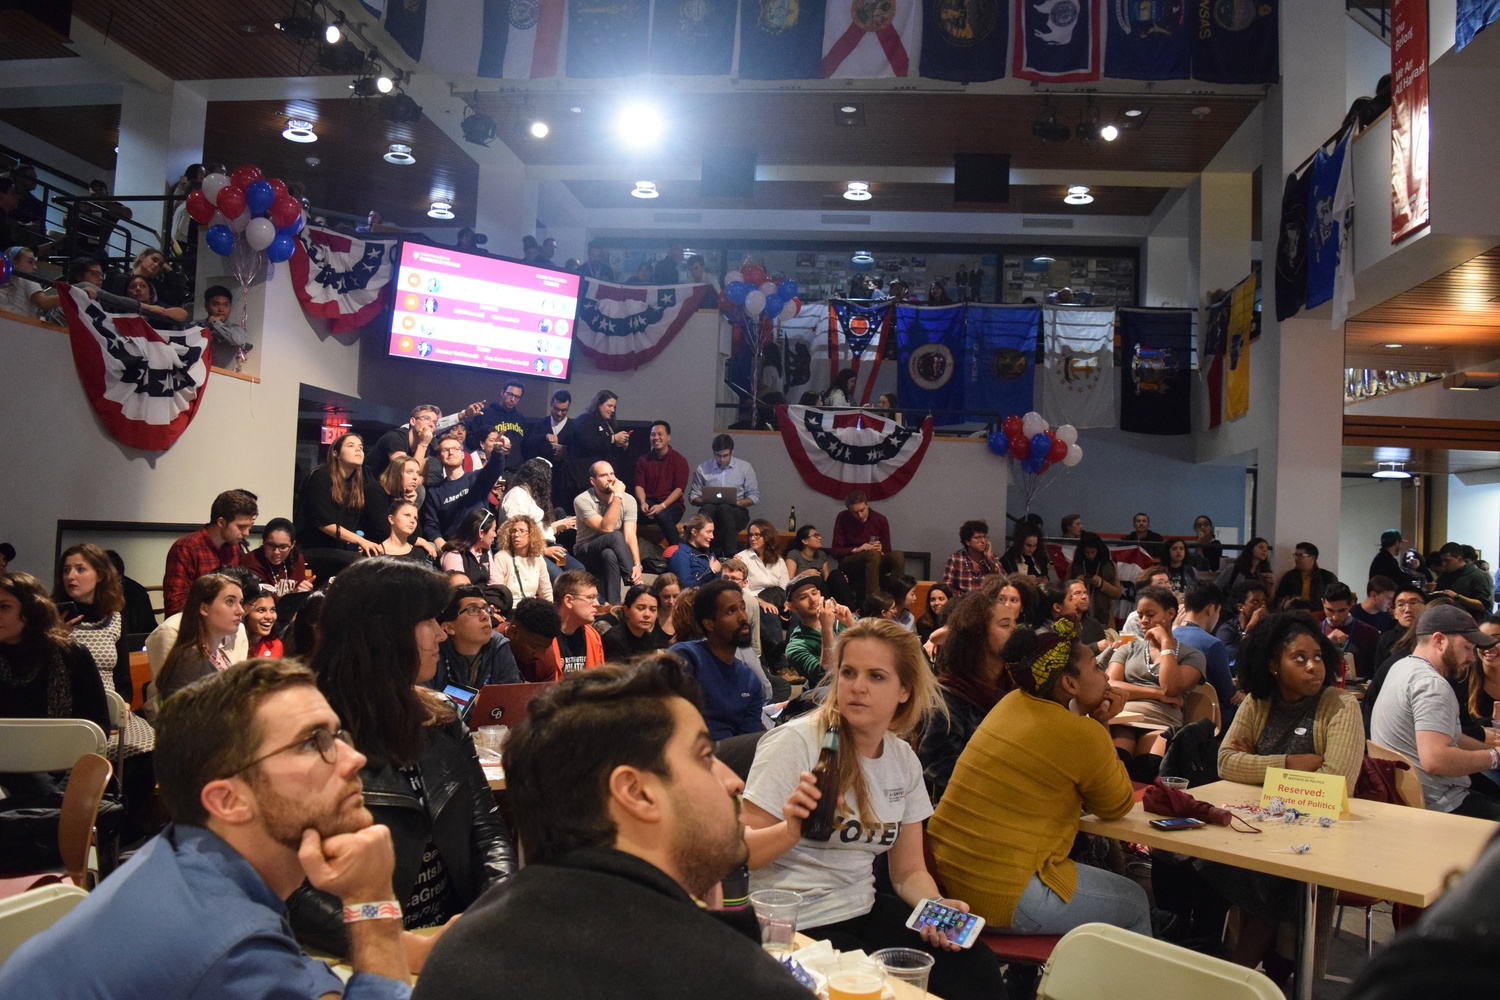 Election Watch Party at the IOP